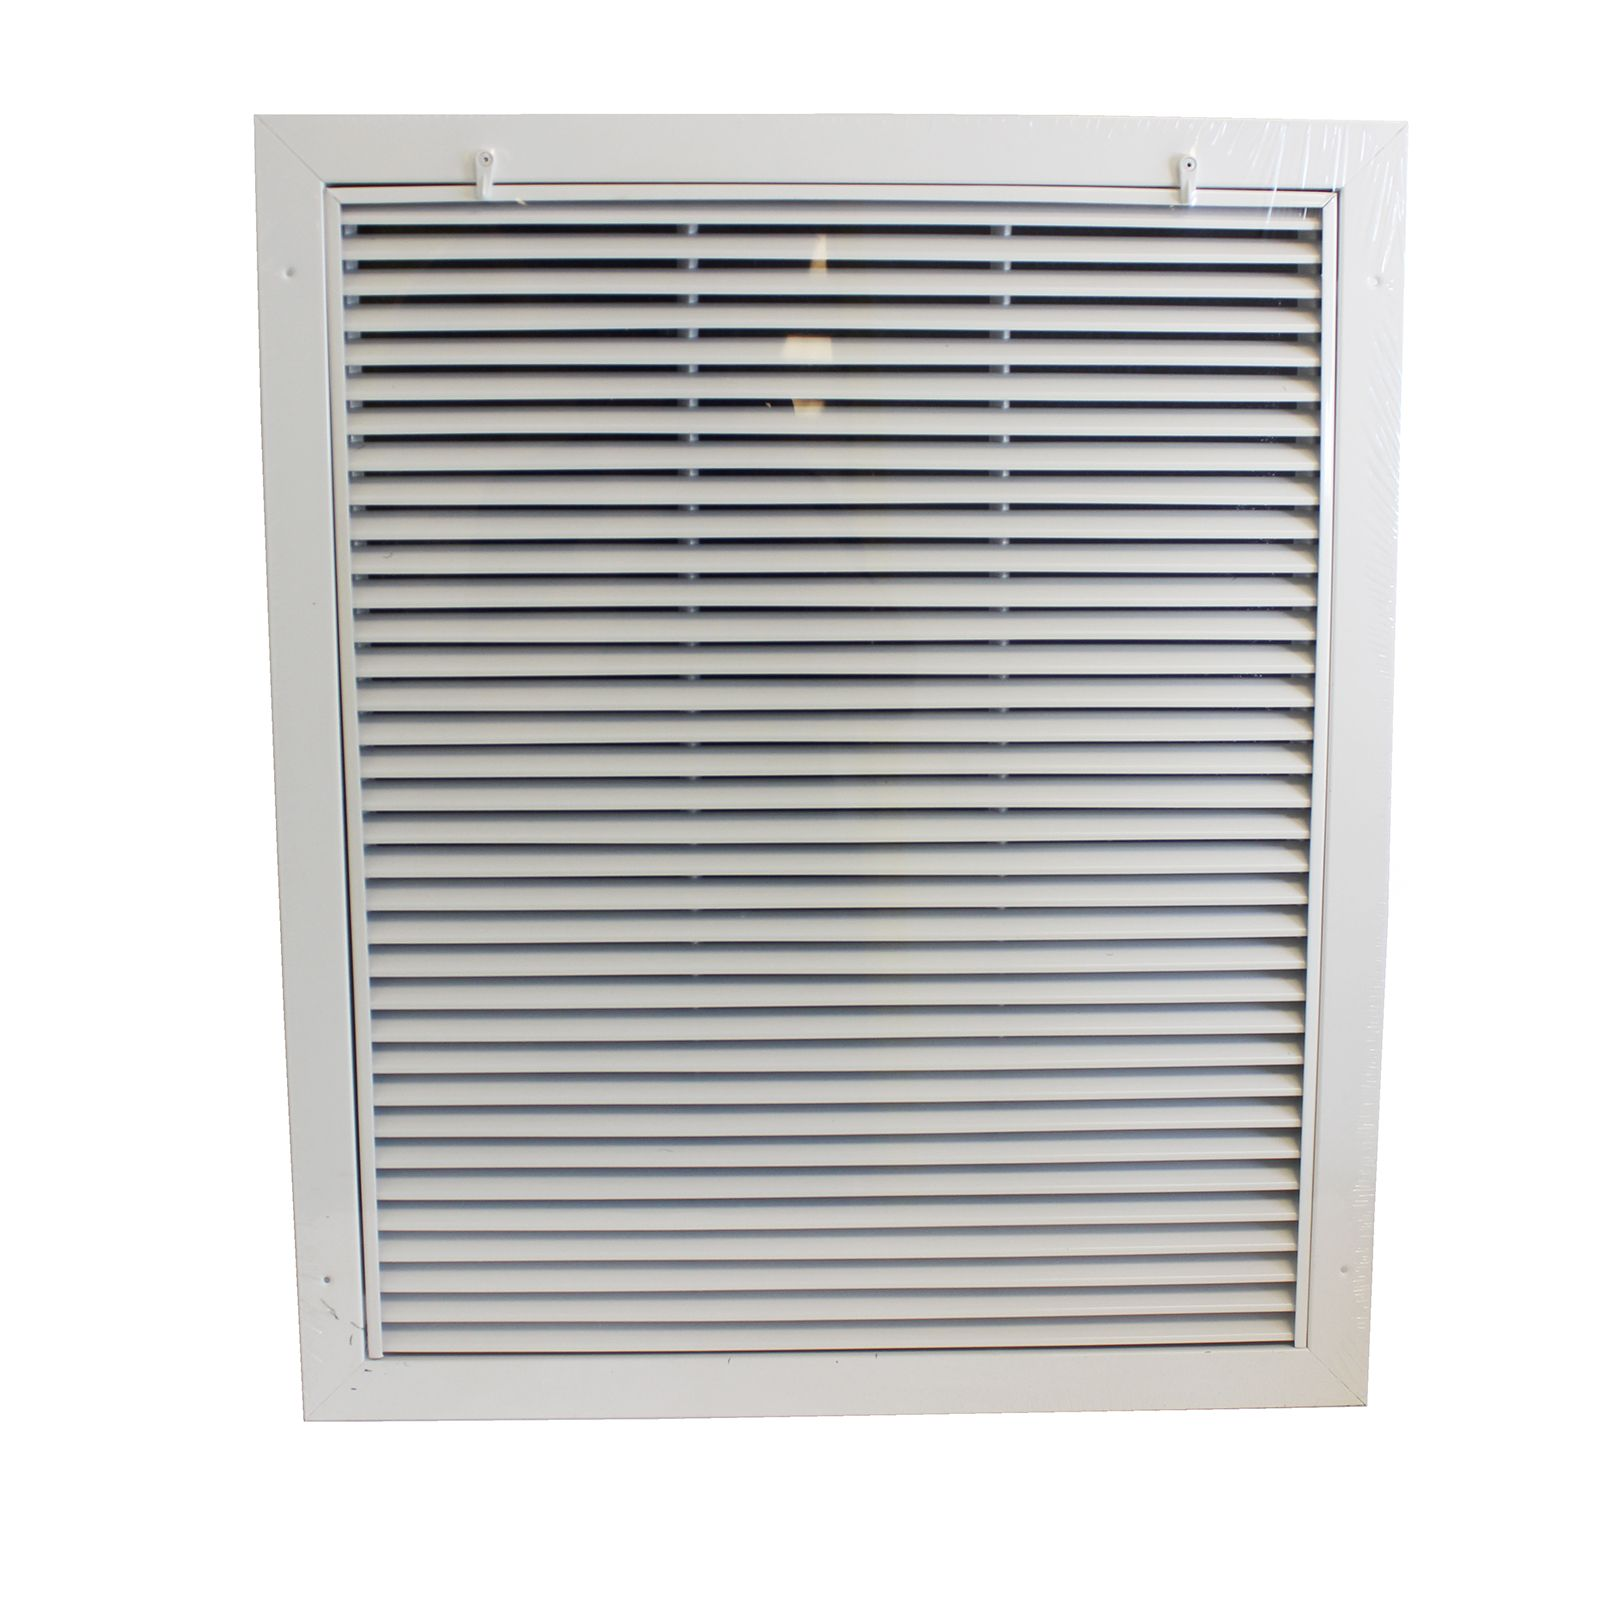 "Grille Tech RAFGS2024 - Aluminum Return Air Filter Grille, Grille Size 20"" X 24"" White"